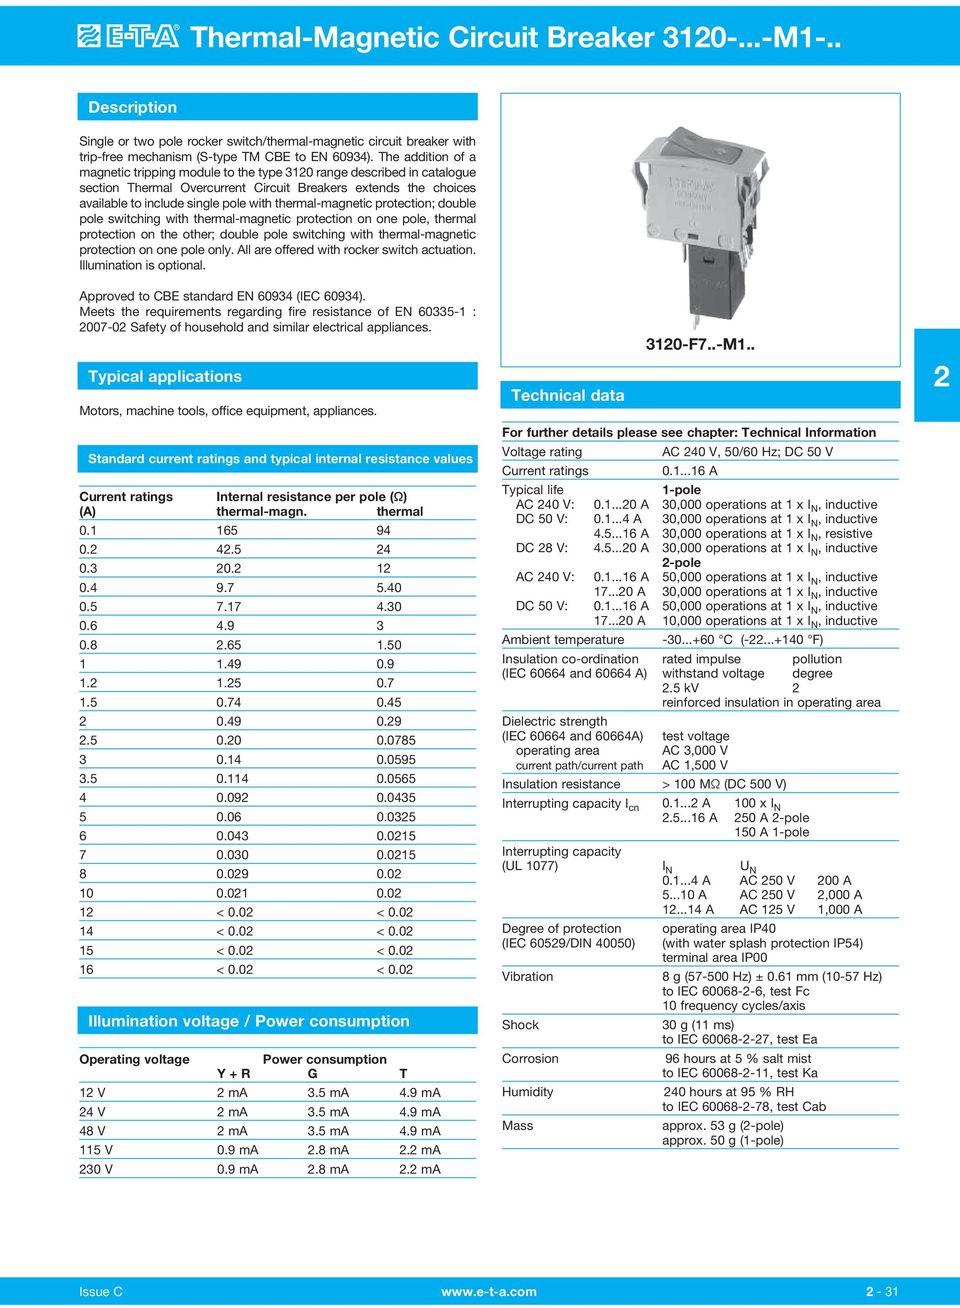 Thermal Magnetic Circuit Breaker M Pdf 12 Volt Breakers Protection Double Pole Switching With On One 6